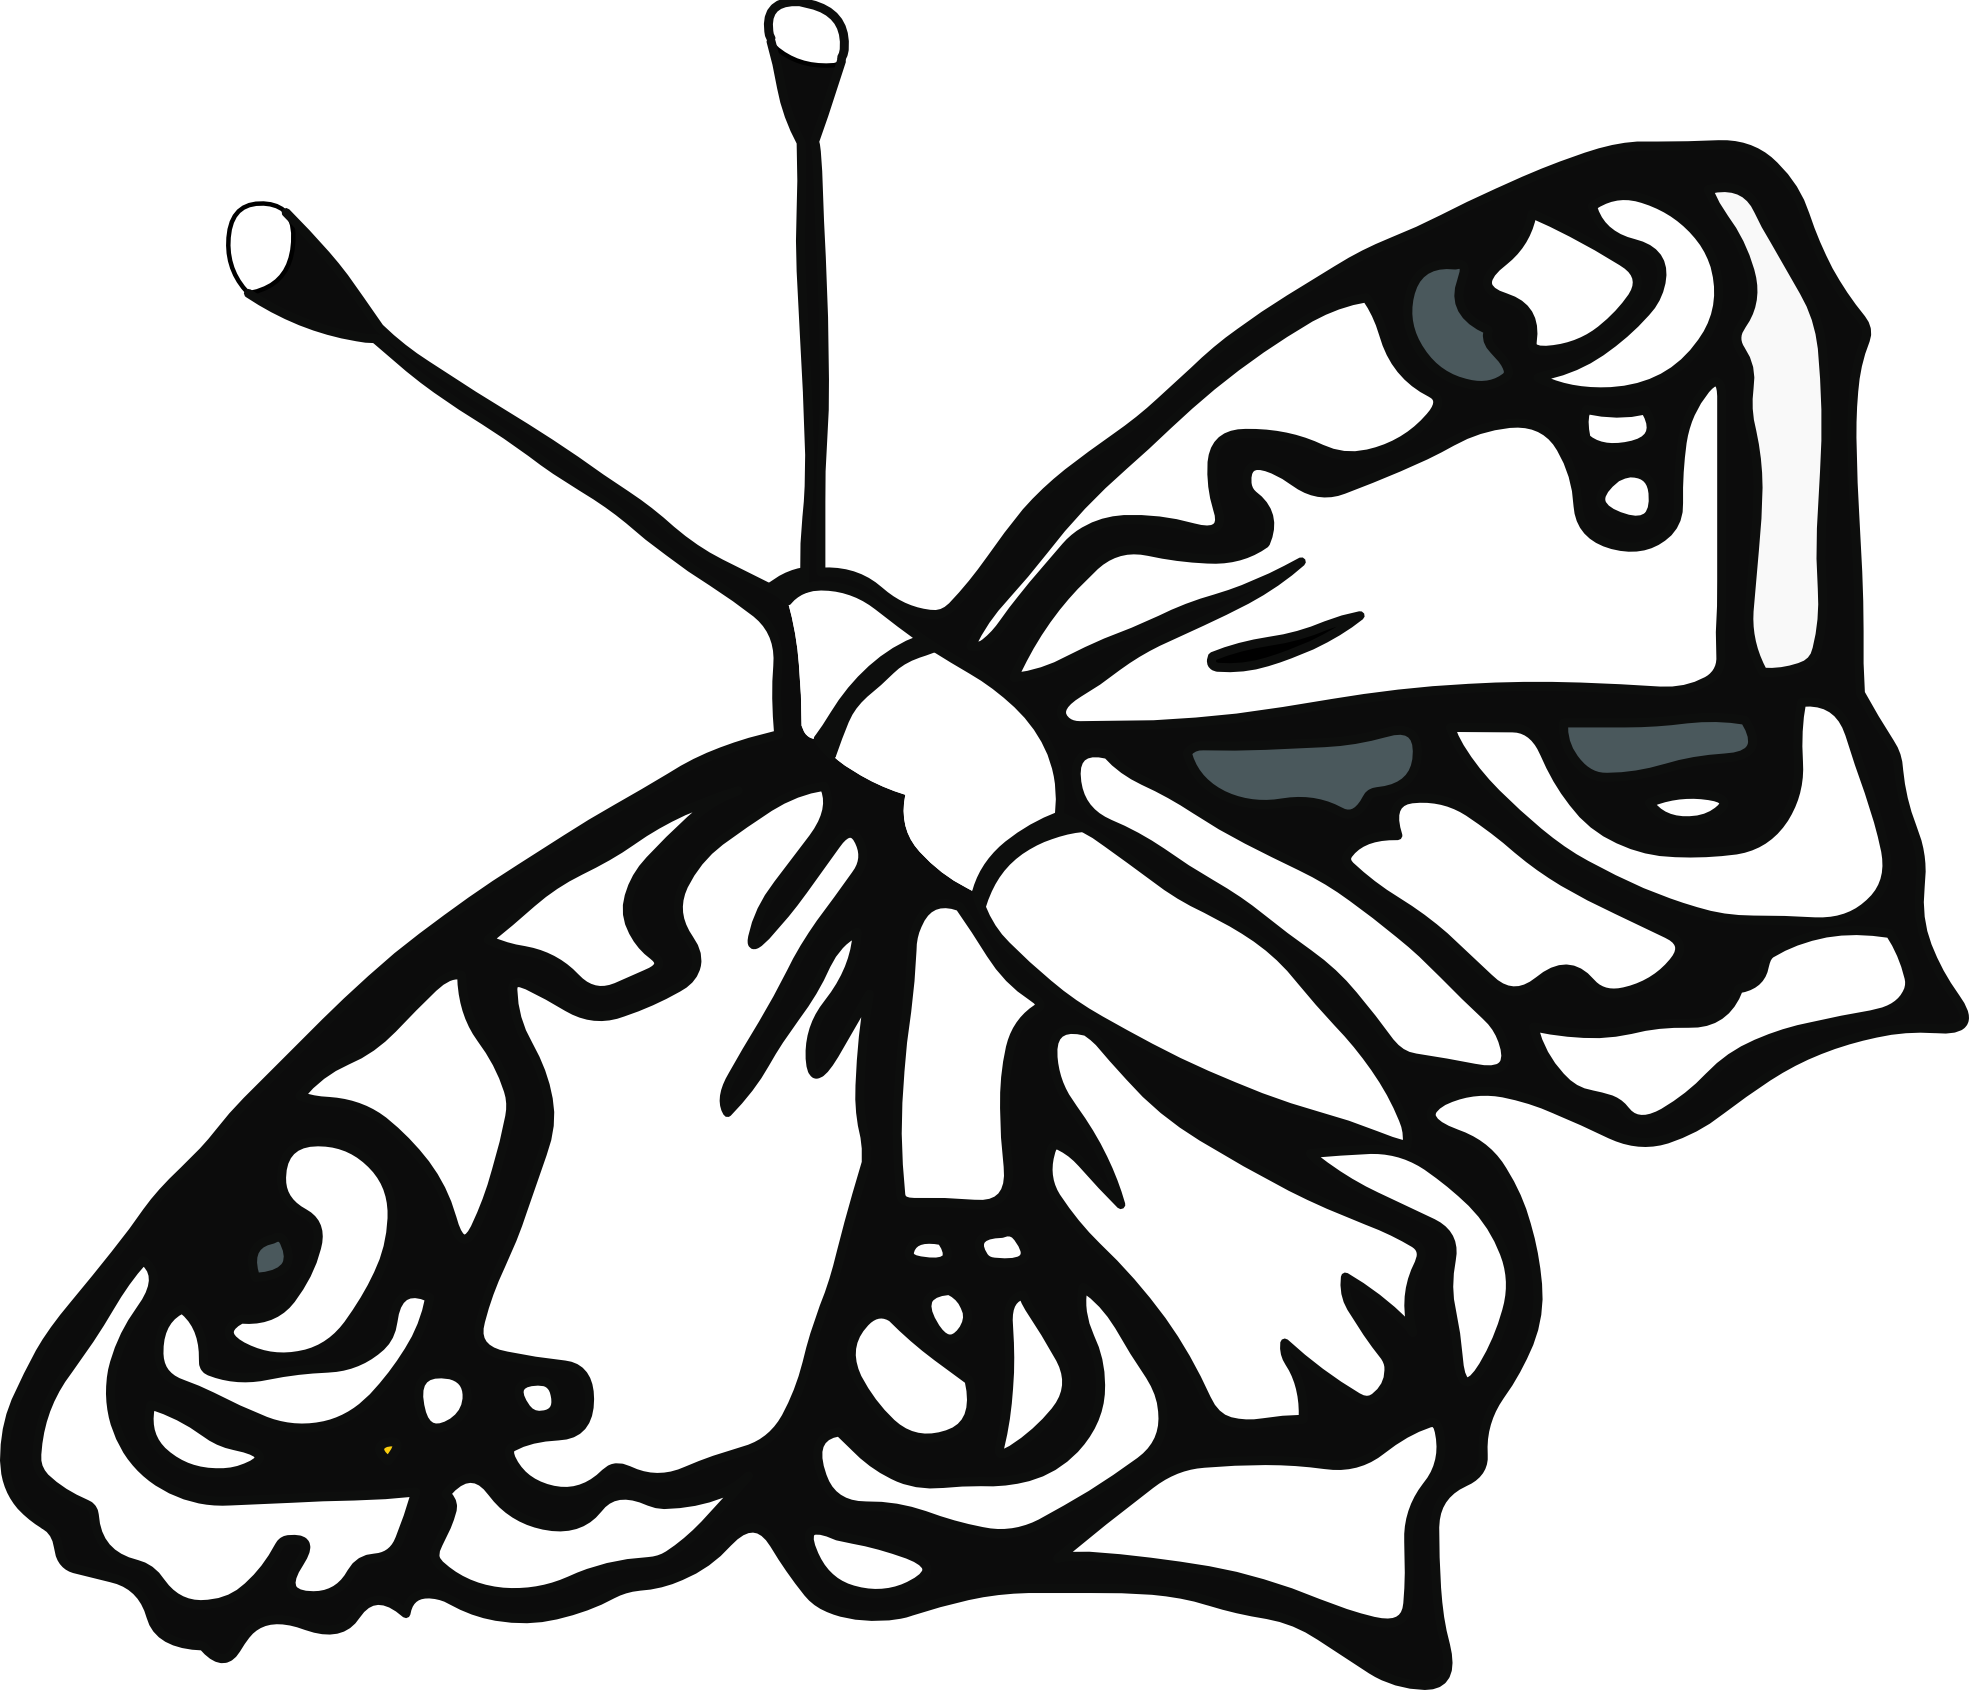 Black And White Drawings Of Butterflies - ClipArt Best